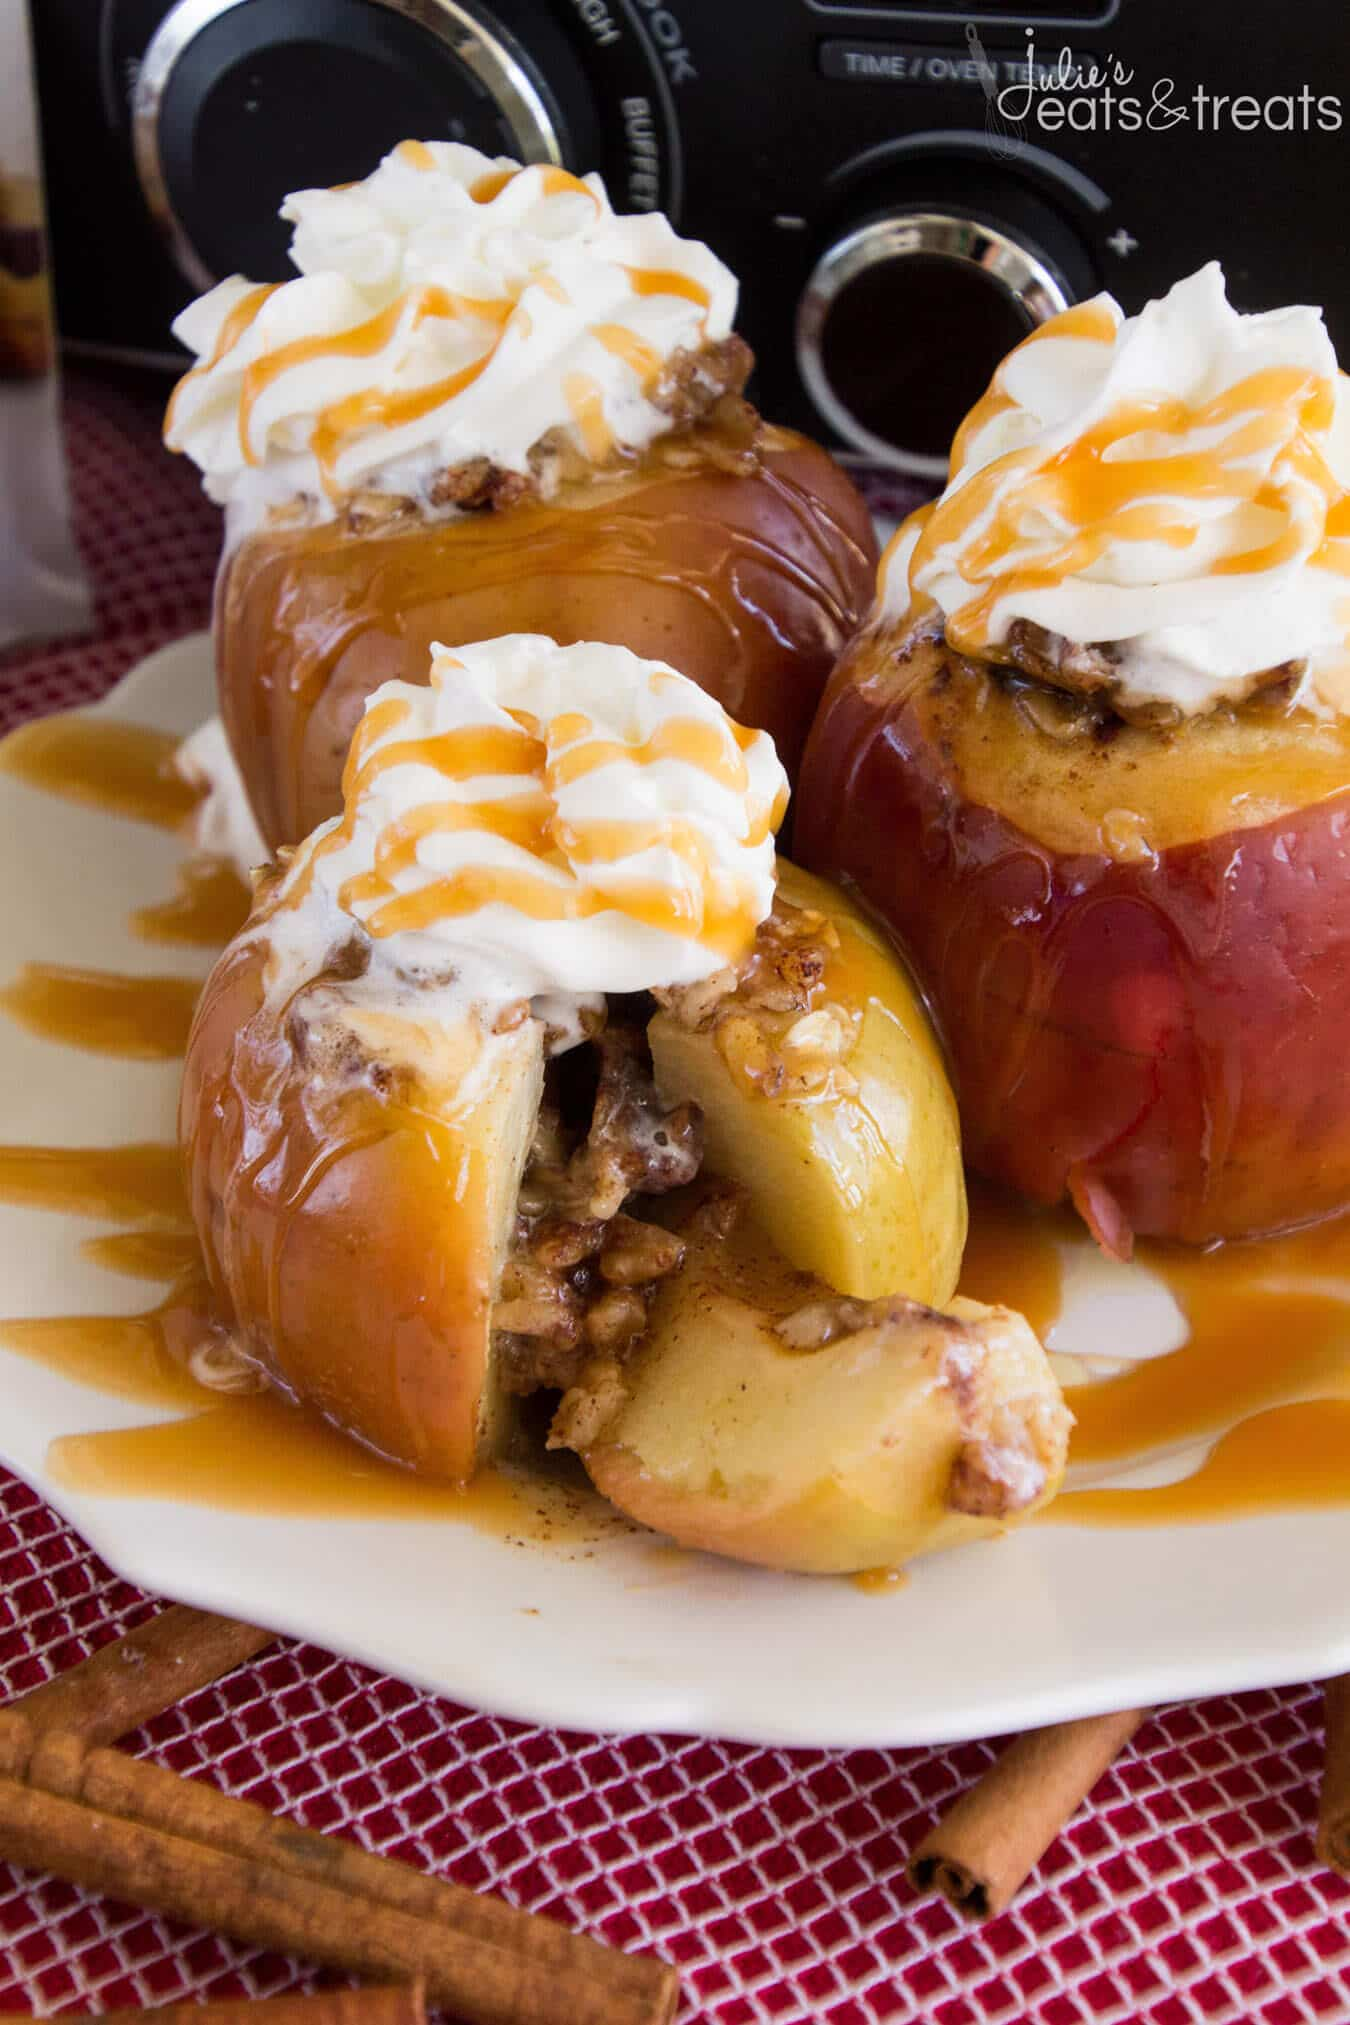 , Apples Stuffed with Oatmeal, Brown Sugar and Walnuts then Baked ...